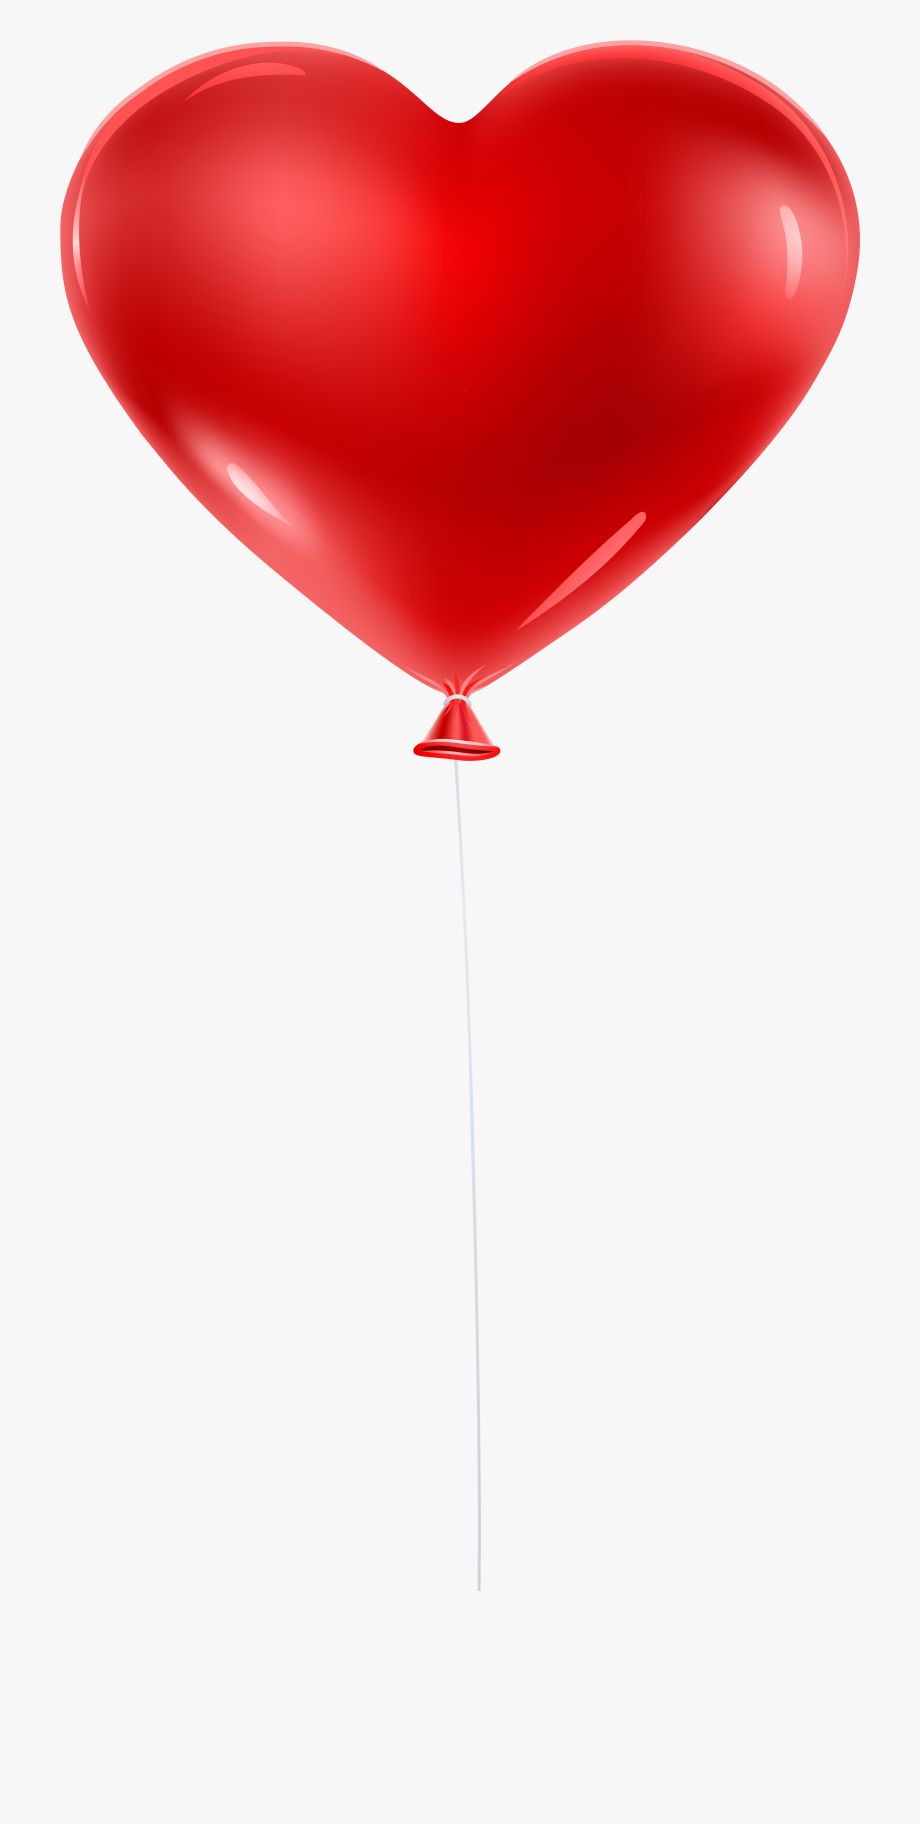 Clipart balloon clear background. Red heart transparent clip